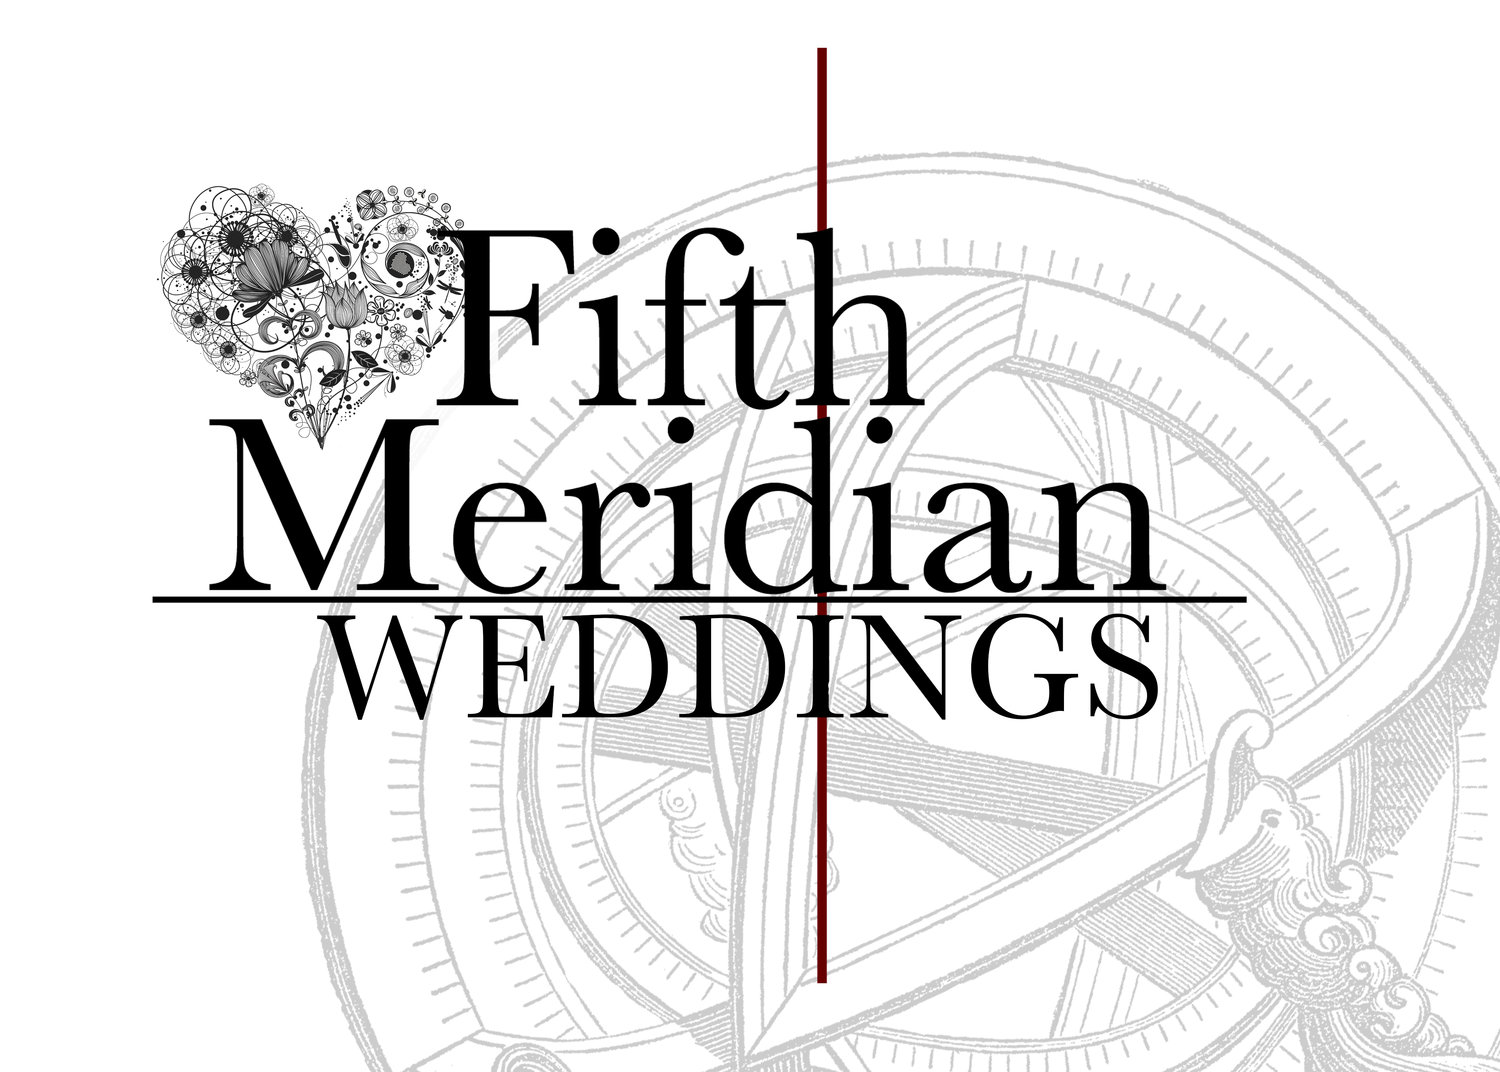 FifthMeridianWeddings.com